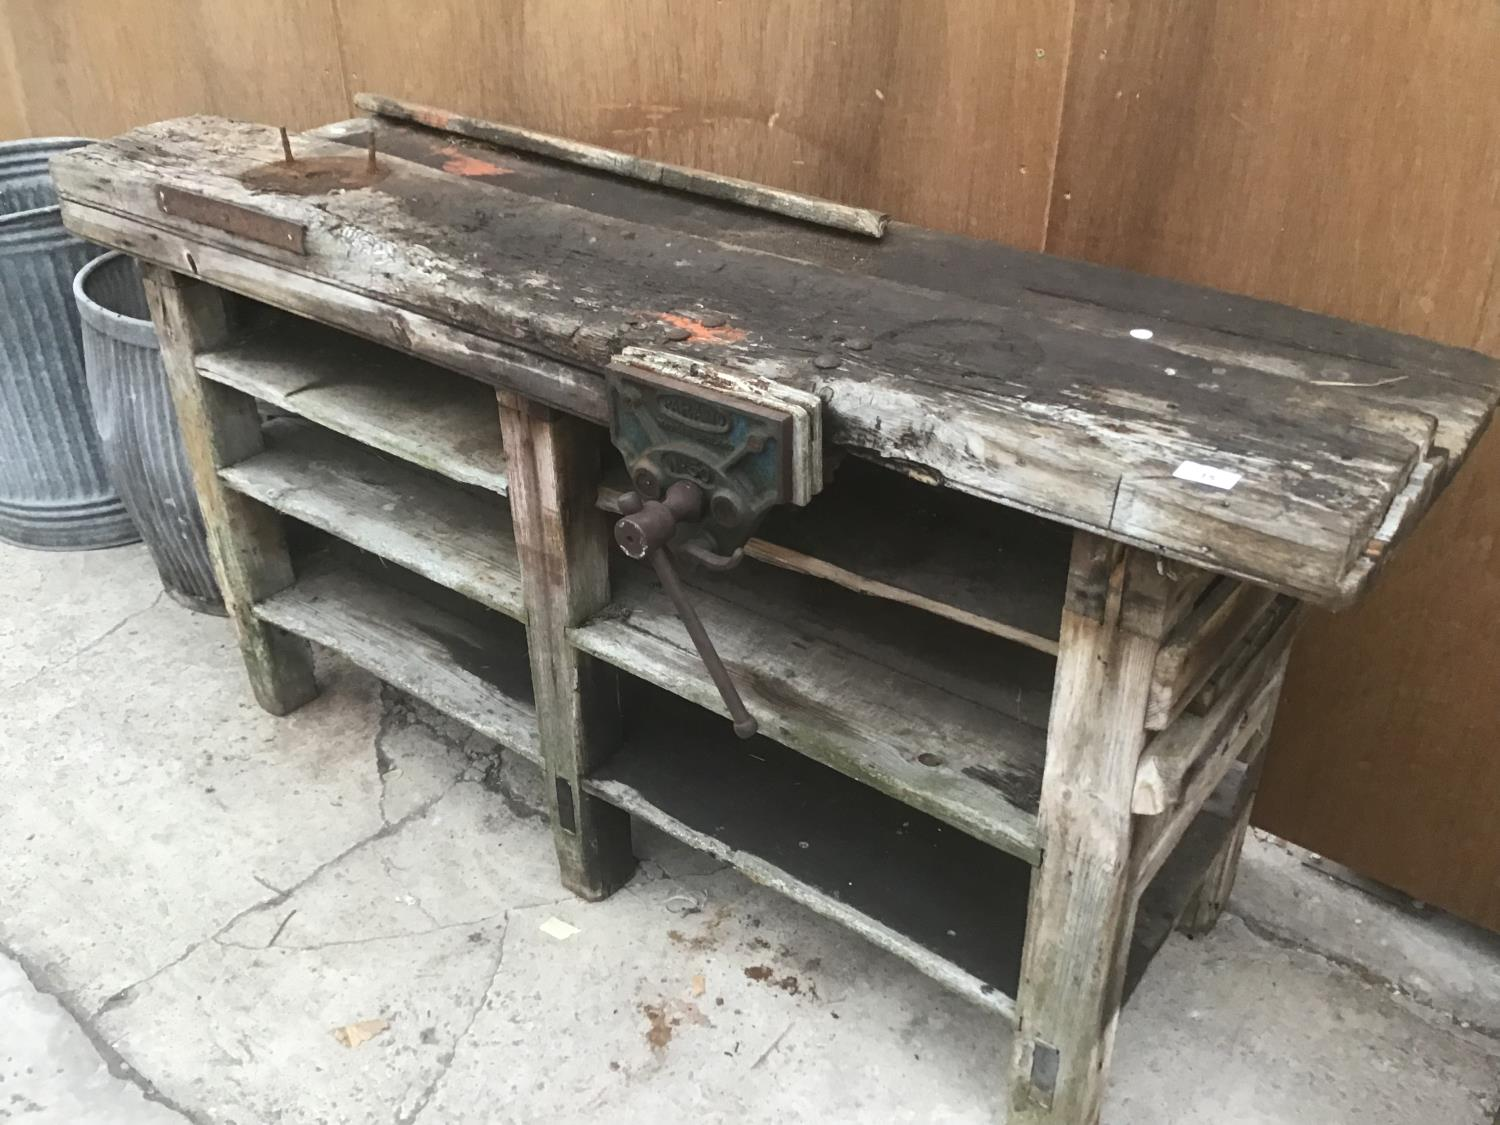 A LARGE WORKSHOP BENCH WITH A PAPAMO No 30 VICE